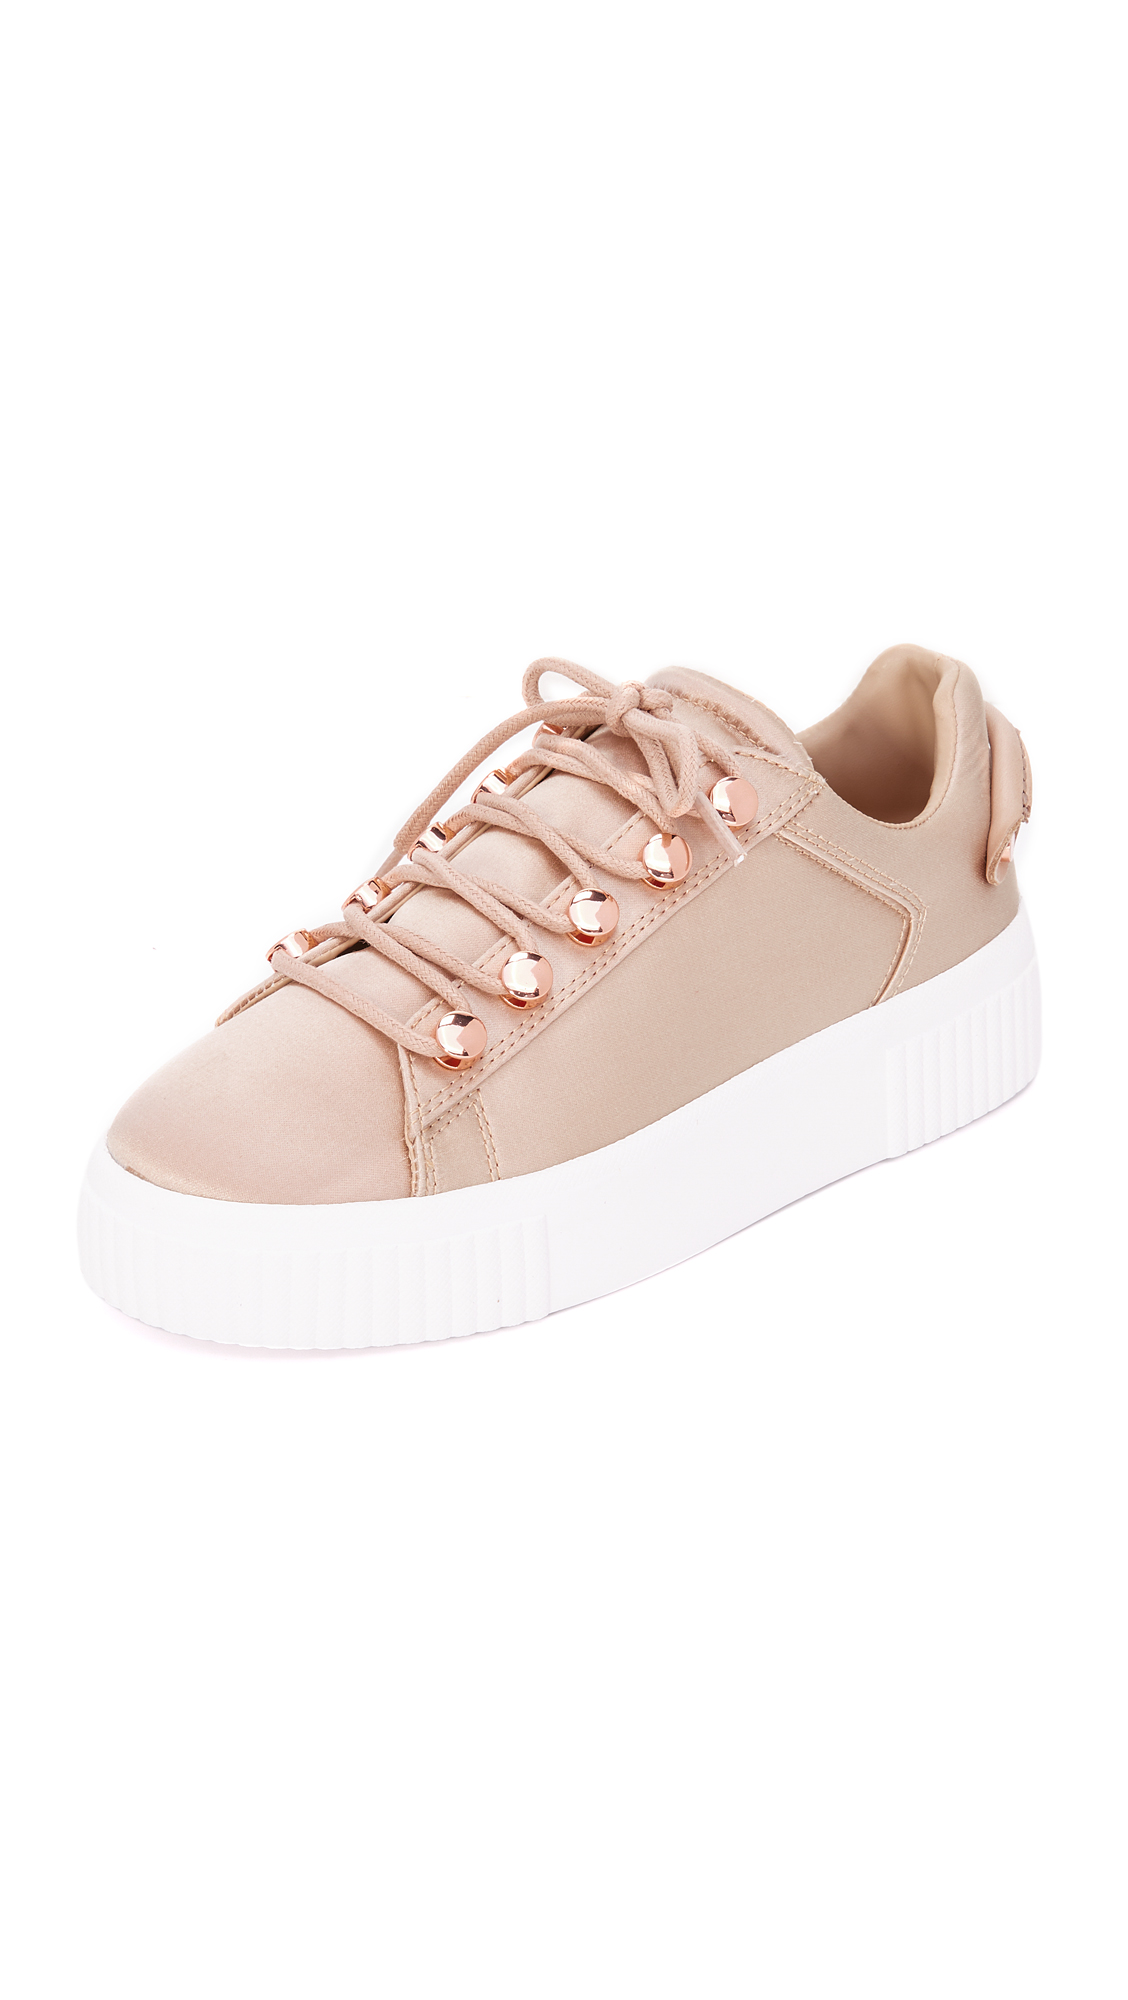 KENDALL + KYLIE Rae III Satin Sneakers - Light Pink